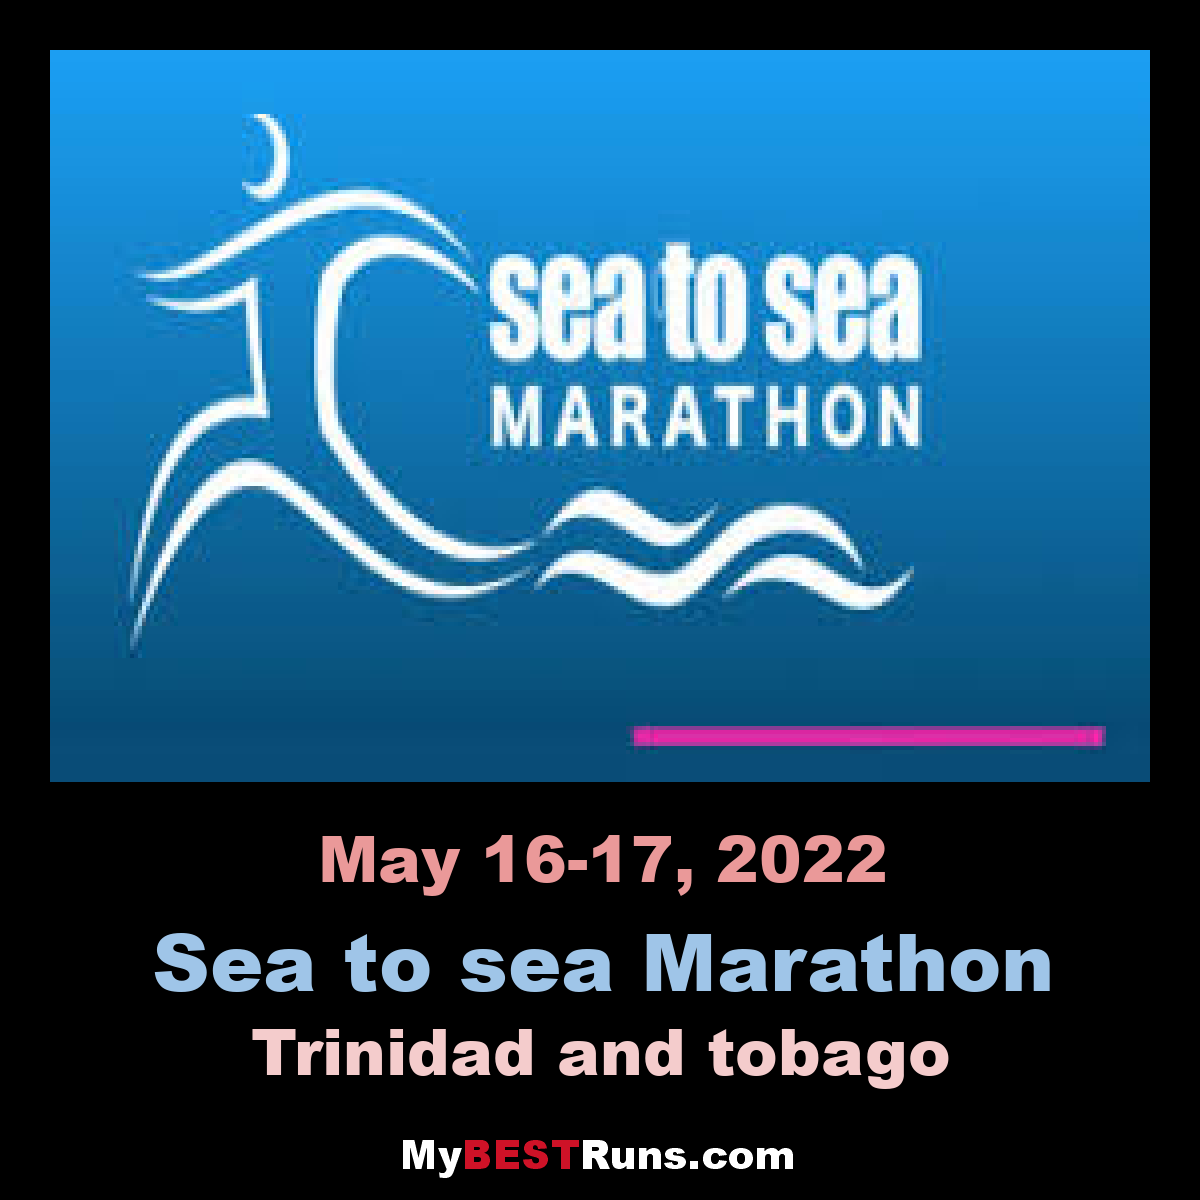 Sea to sea Marathon